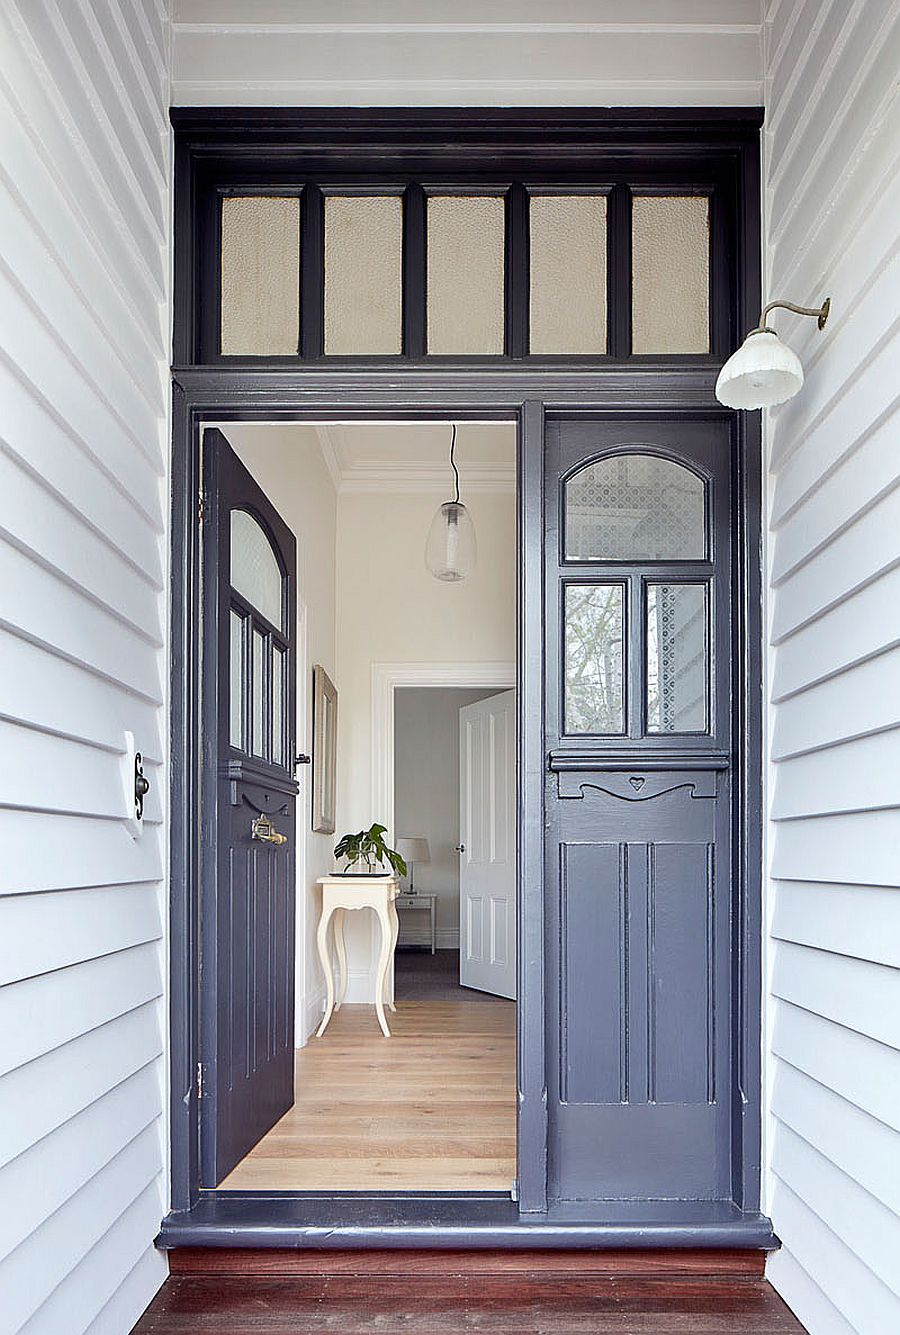 Entry to the traditional home with modern gray doors